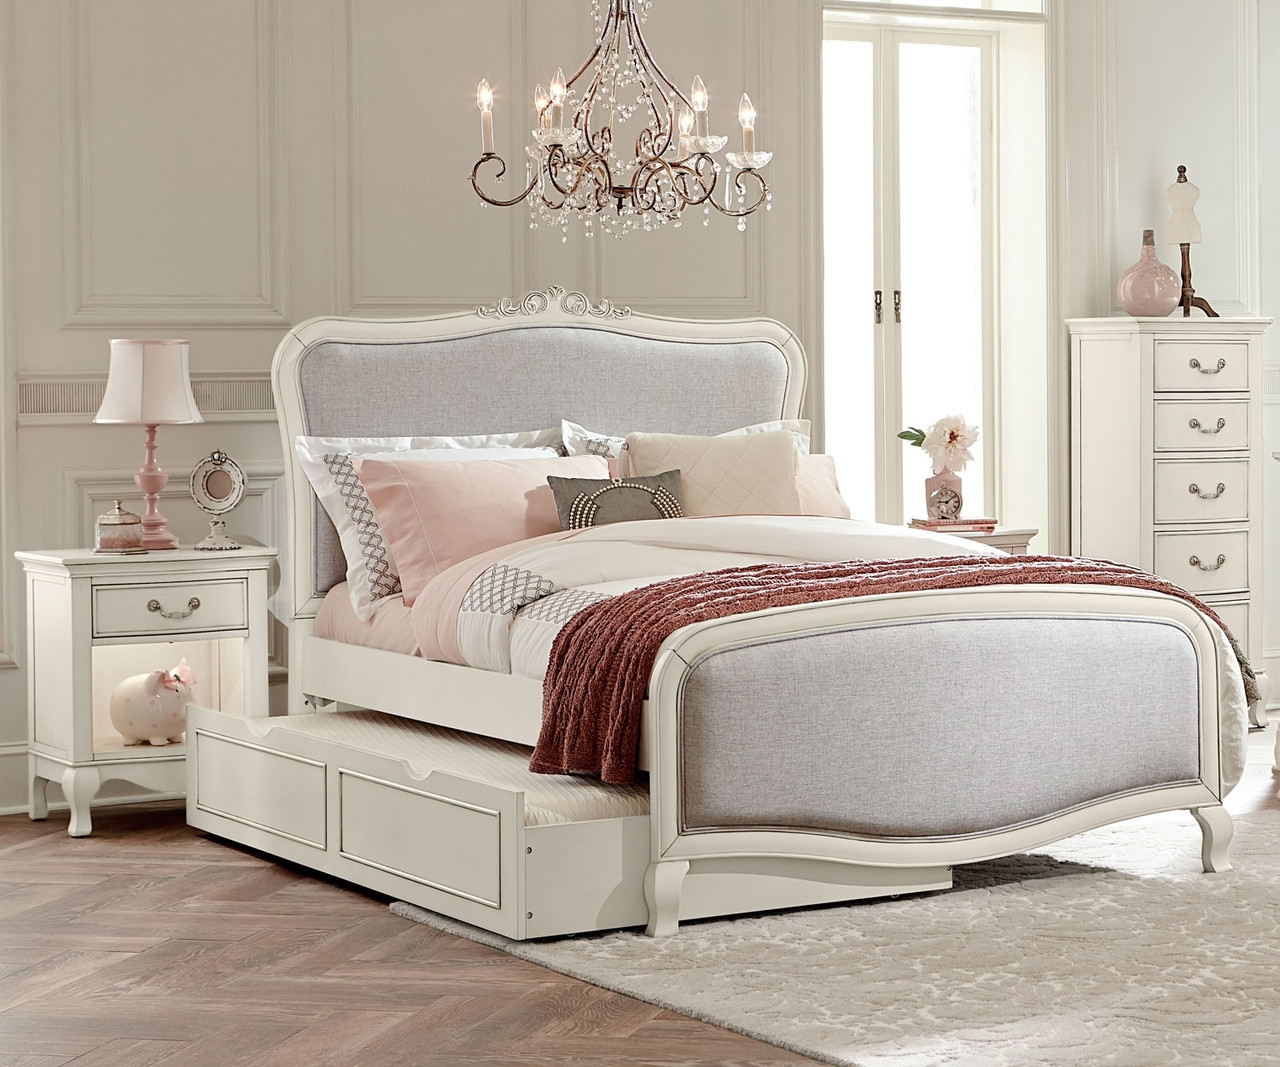 Kensington White Finish Katherine Full Size Bed With